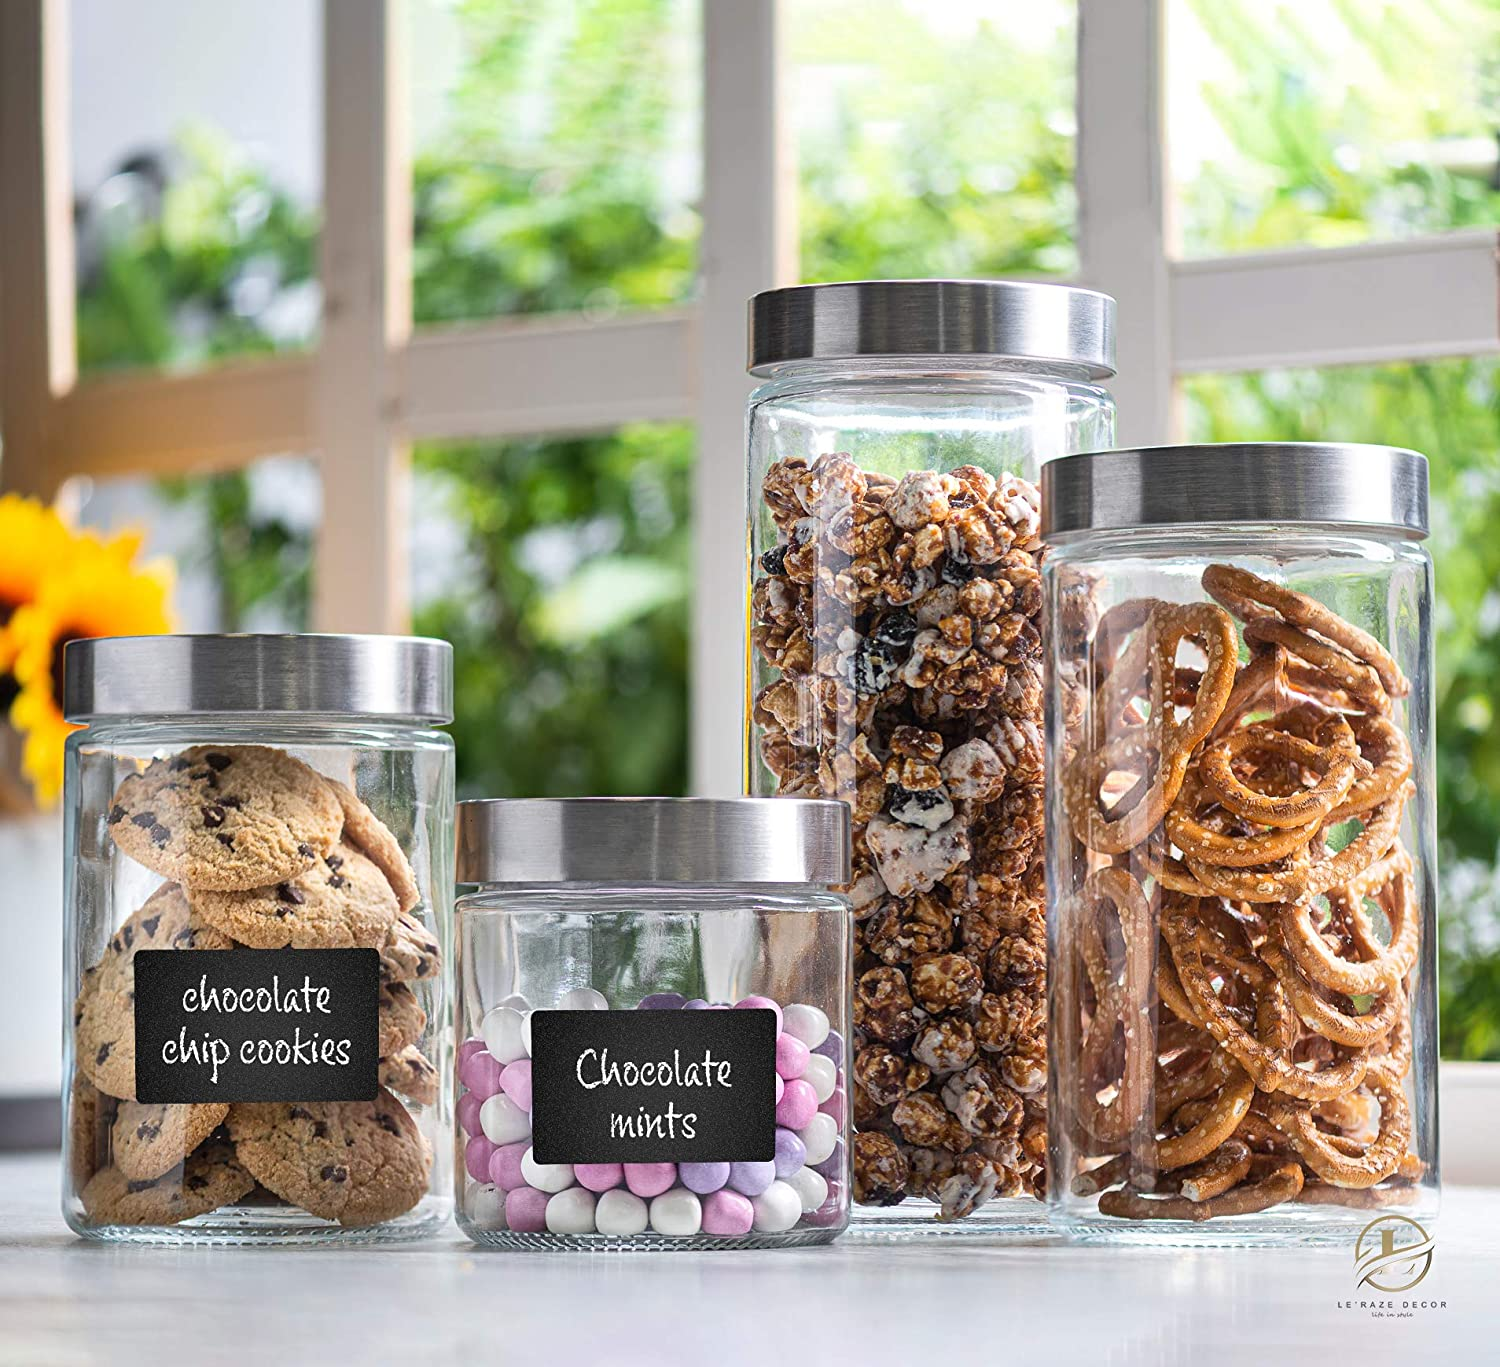 4pc Canister Sets for Kitchen Counter or Bathroom + Labels & Marker, Glass Cookie Jars with Airtight Lids - Food Storage Containers with Lids Airtight for Pantry - Flour, Sugar, Coffee, Cookies, etc.